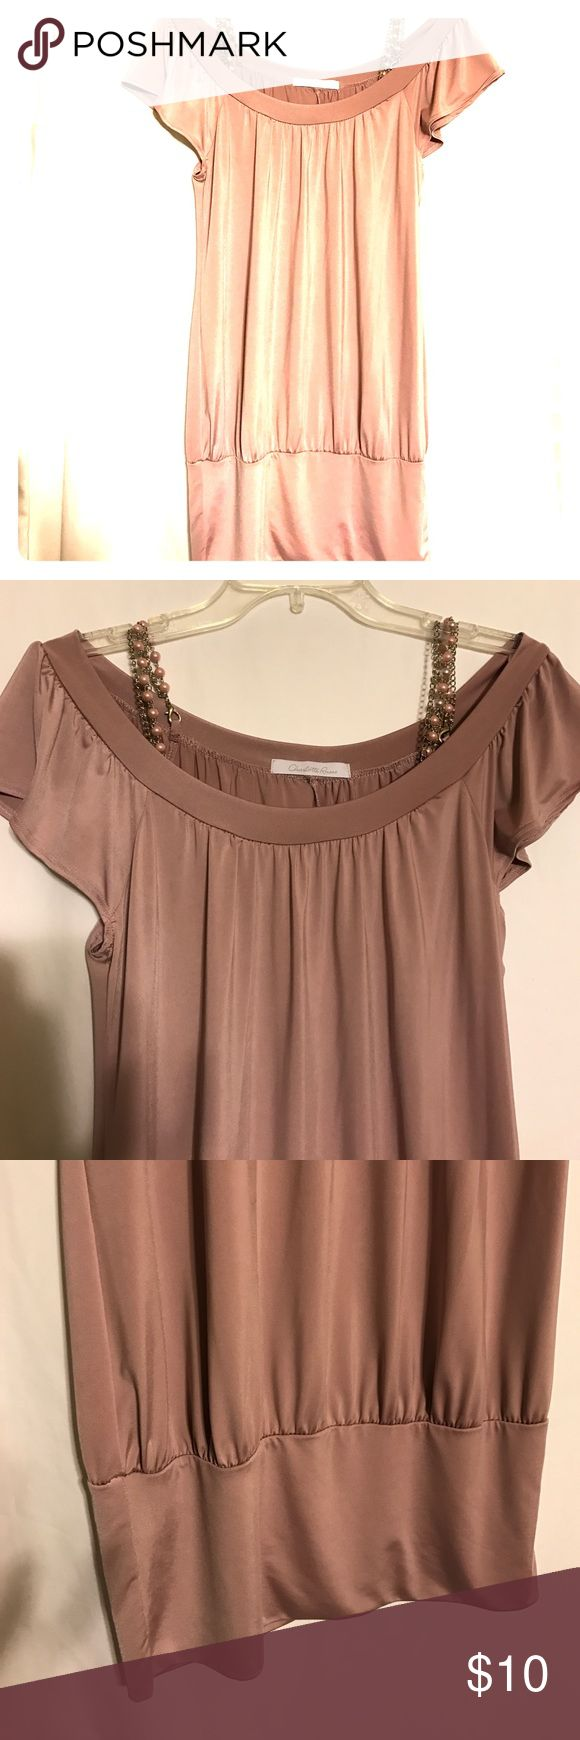 ‼️TODAY ONLY‼️ Charlotte Russe Top Adorable polyester & spandex top with attached beads Charlotte Russe Tops